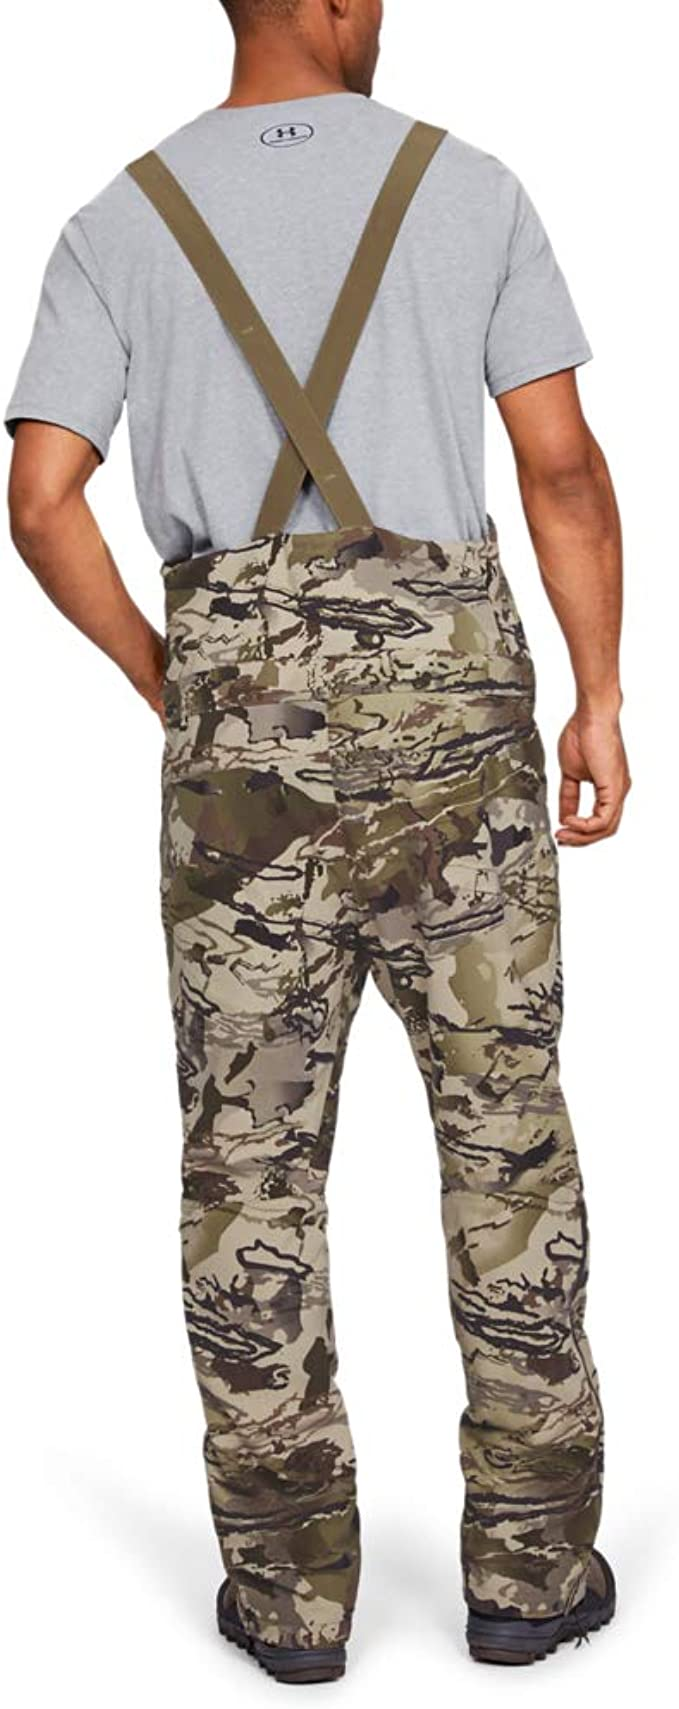 Under Armour Men/'s Grit Bib Mid Season Forest Camo Overalls Hunting Pants M 3XL